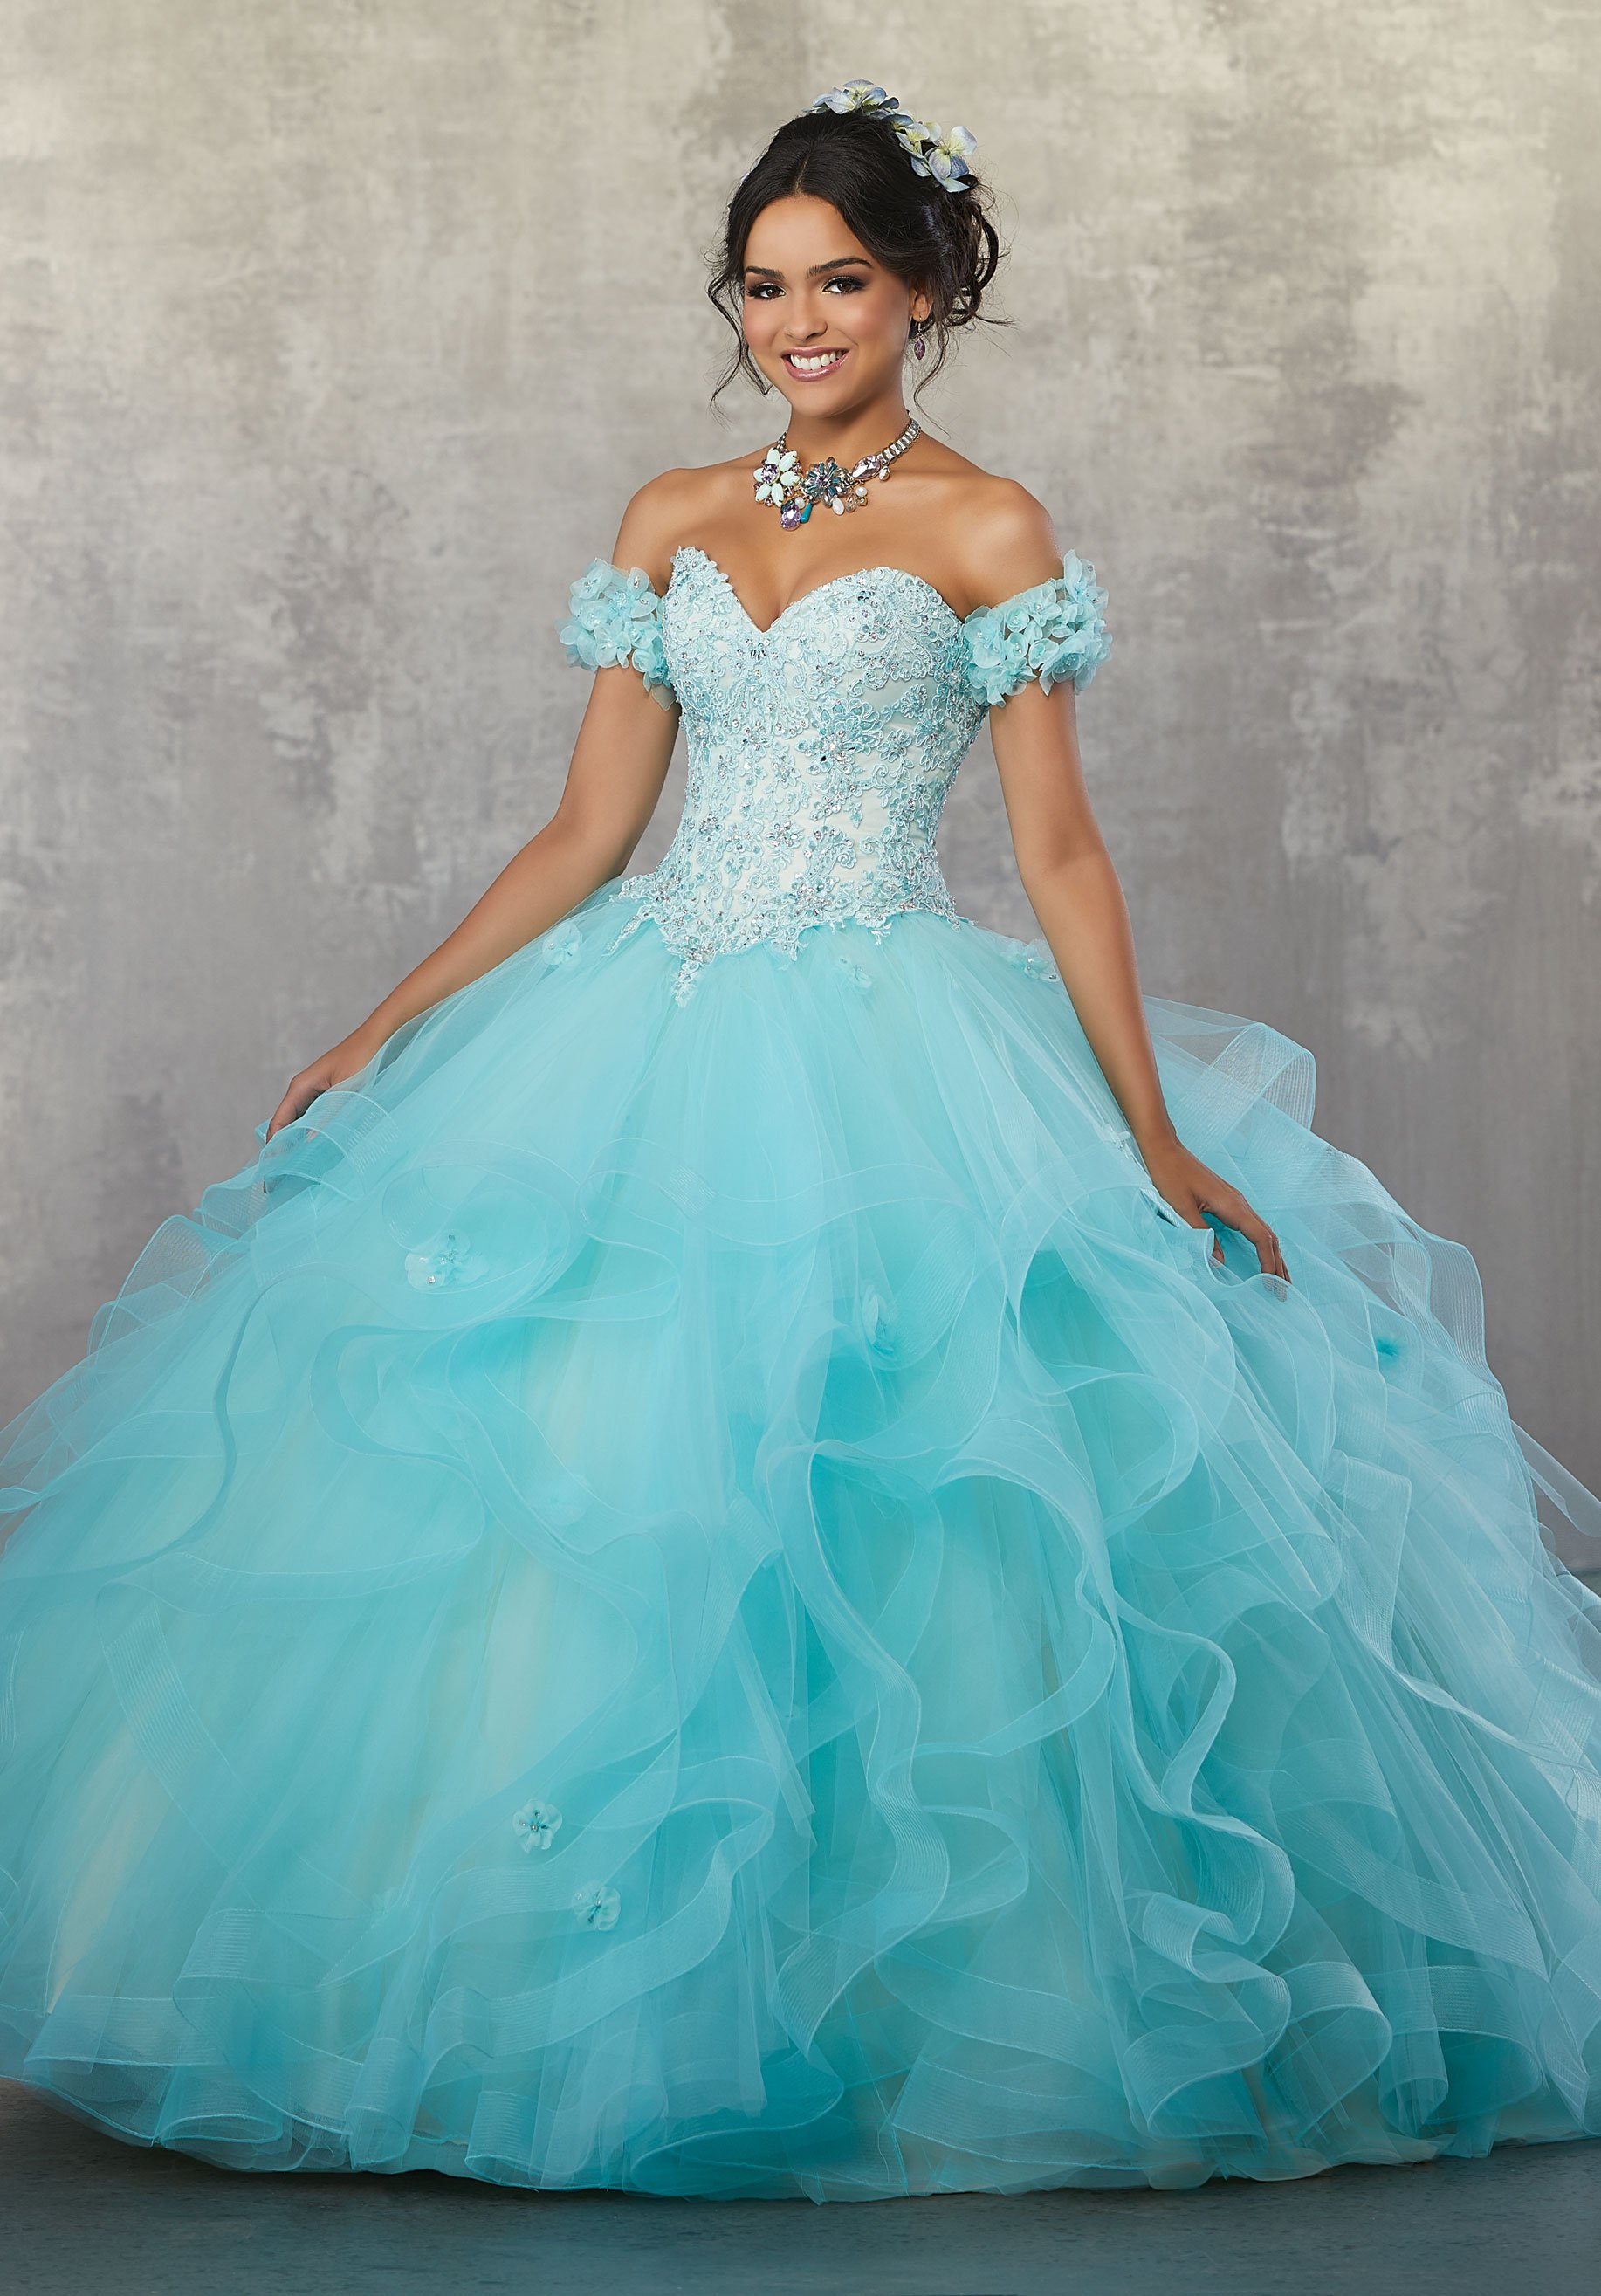 7b71b9c066 Strapless Lace Quinceanera Dress by Mori Lee Vizcaya 89174 in 2019 ...